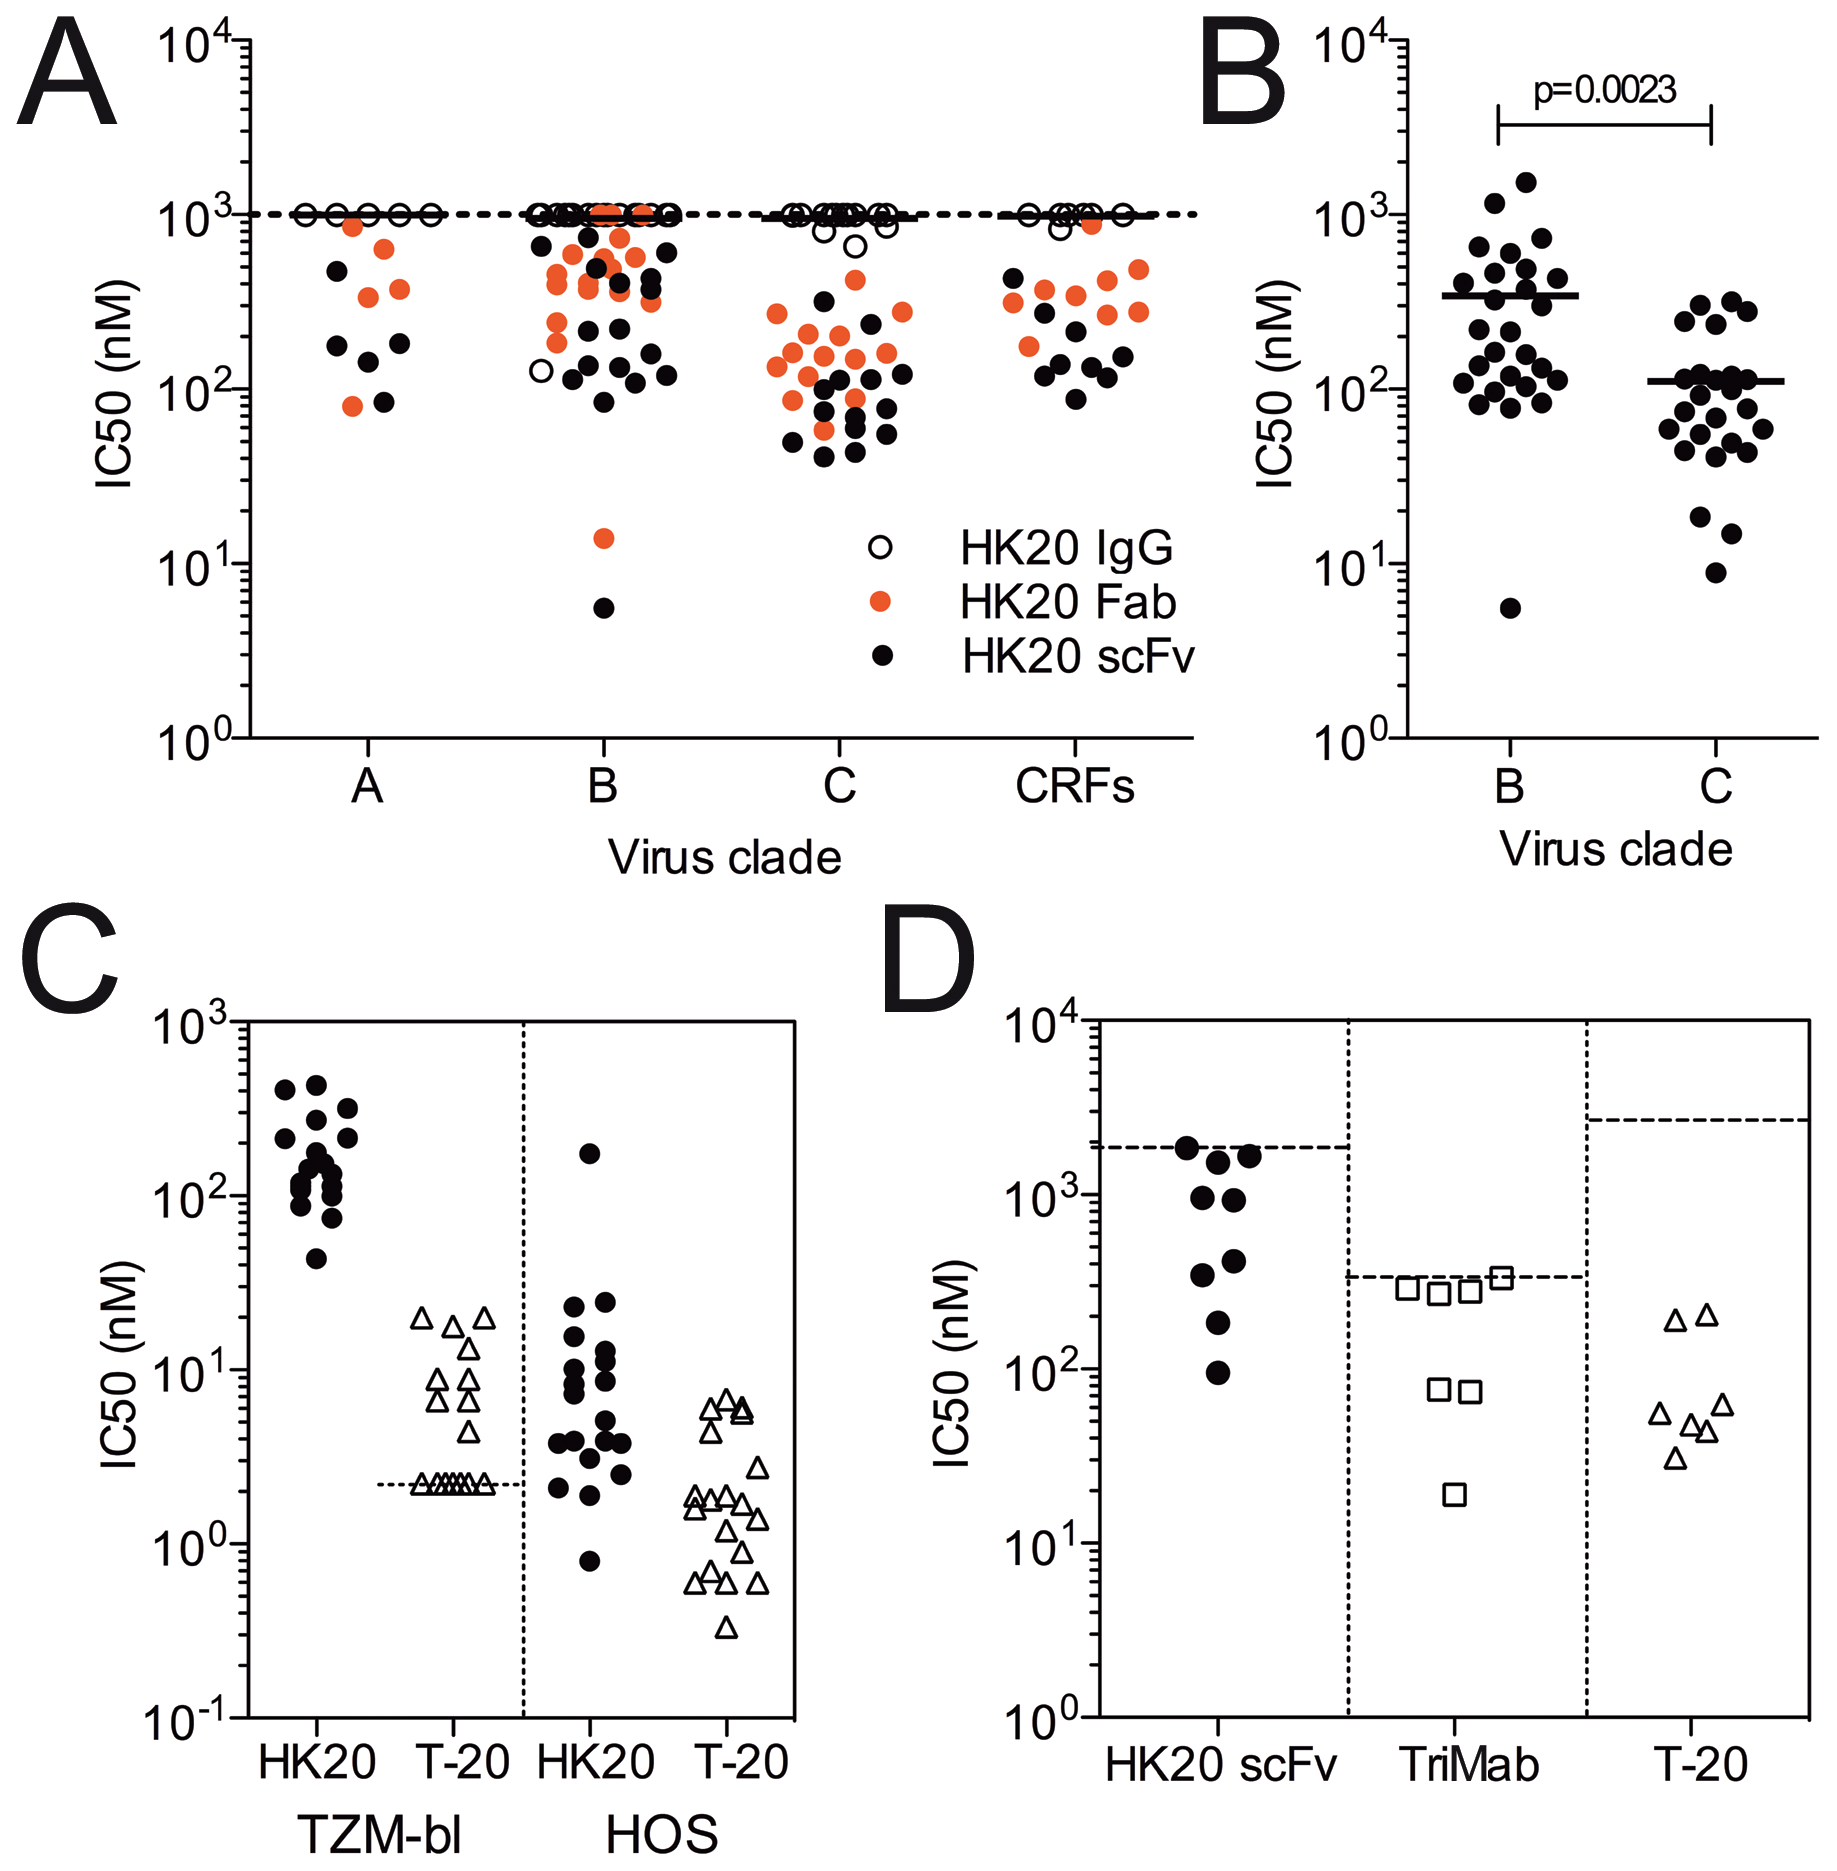 Size dependent neutralization breadth and potency of HK20 in different HIV-1 neutralization assays and comparison with T-20.